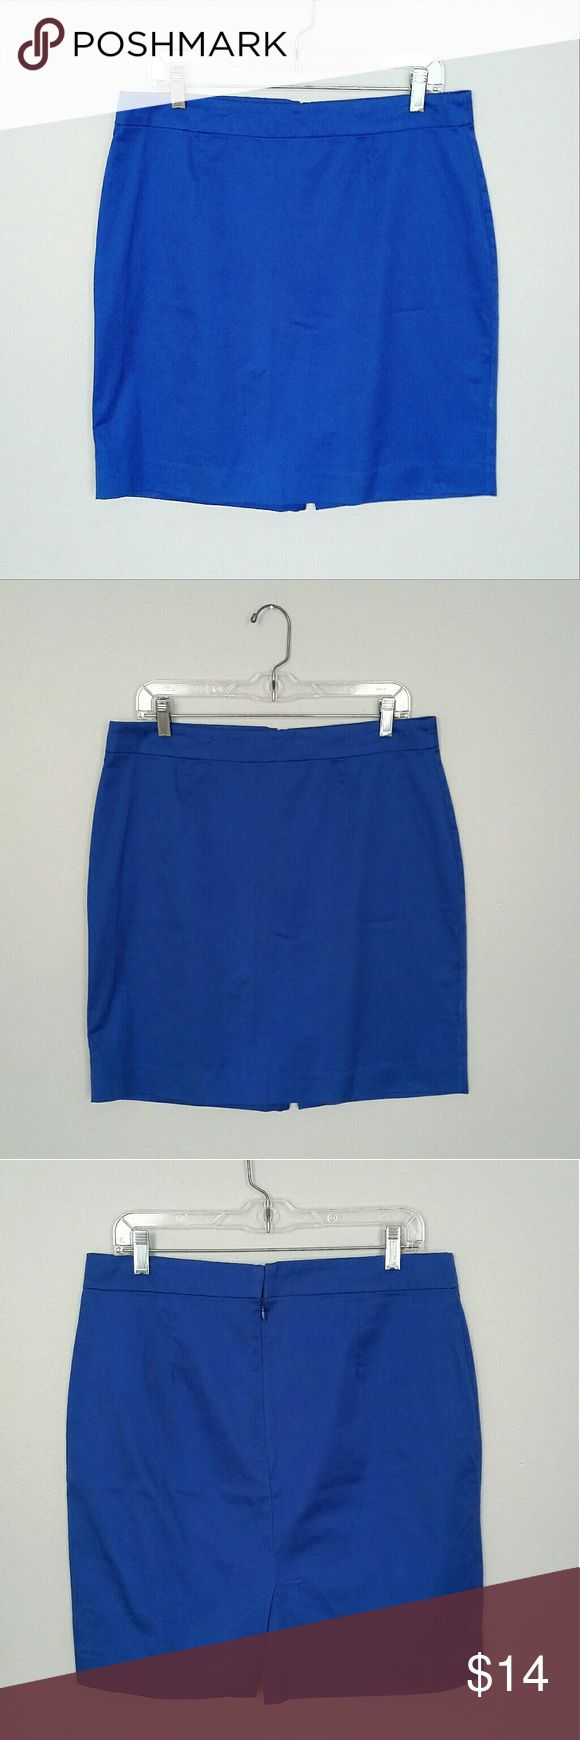 "NWOT Gap royal blue Office Skirt NWOT no flaws, royal blue Office skirt. 97% cotton, 3% spandex, rich blue colored material. Back has zipper and clasp closure. Skirt has 5"" back slit. Width at waist 17"",  width below waist 18"", skirt length 20 inches, width at hem 21 inches. GAP Skirts Midi"